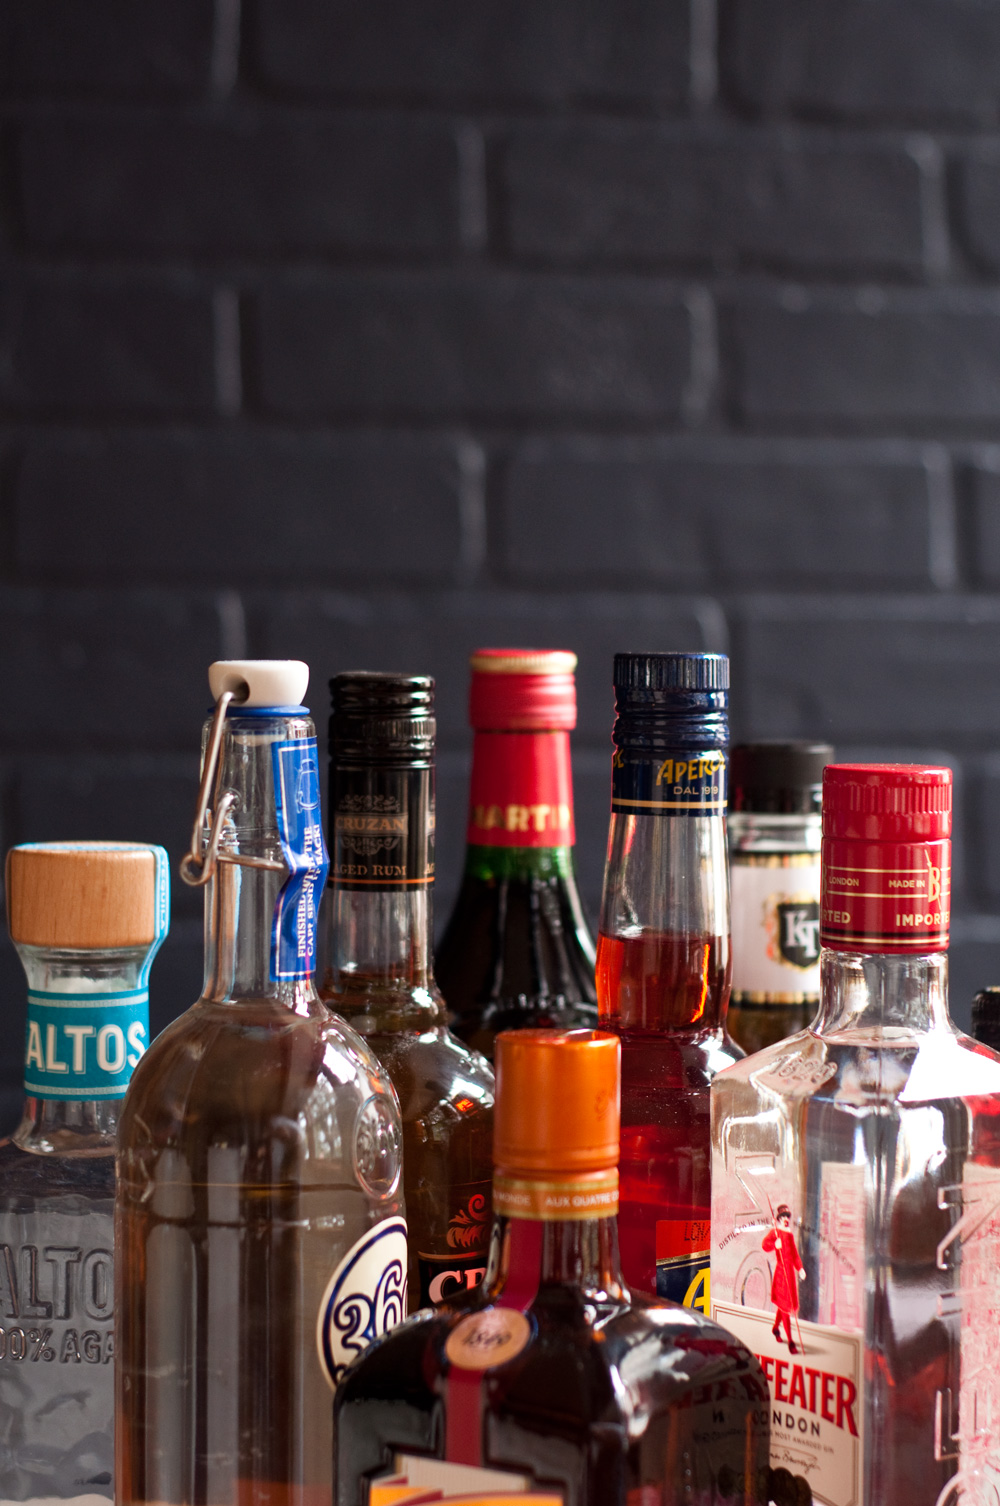 How To Stock Your Home Bar On The Cheap (Yes, Weu0027re Naming Bottles)